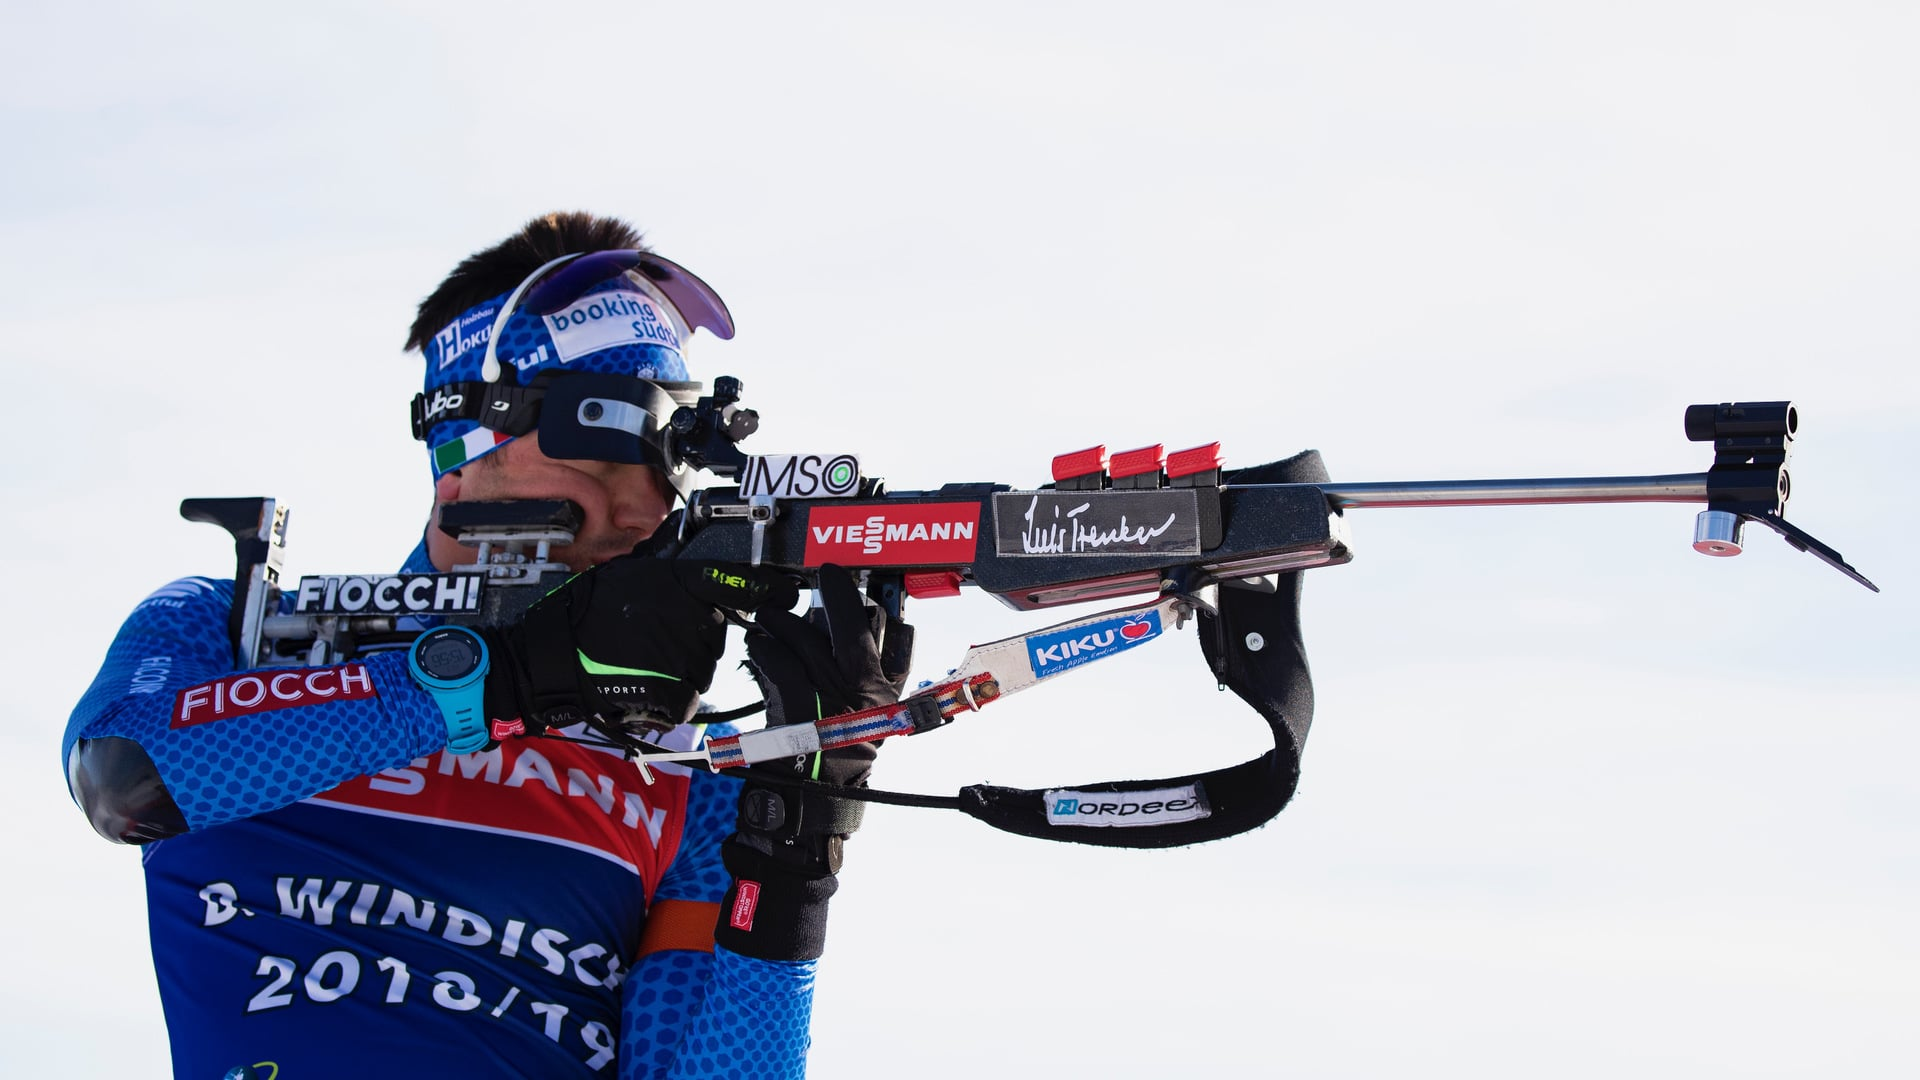 11.01.2020 - Luis Trenker - proud Silver Partner of the Biathlon World Championships 2020 in Antholz